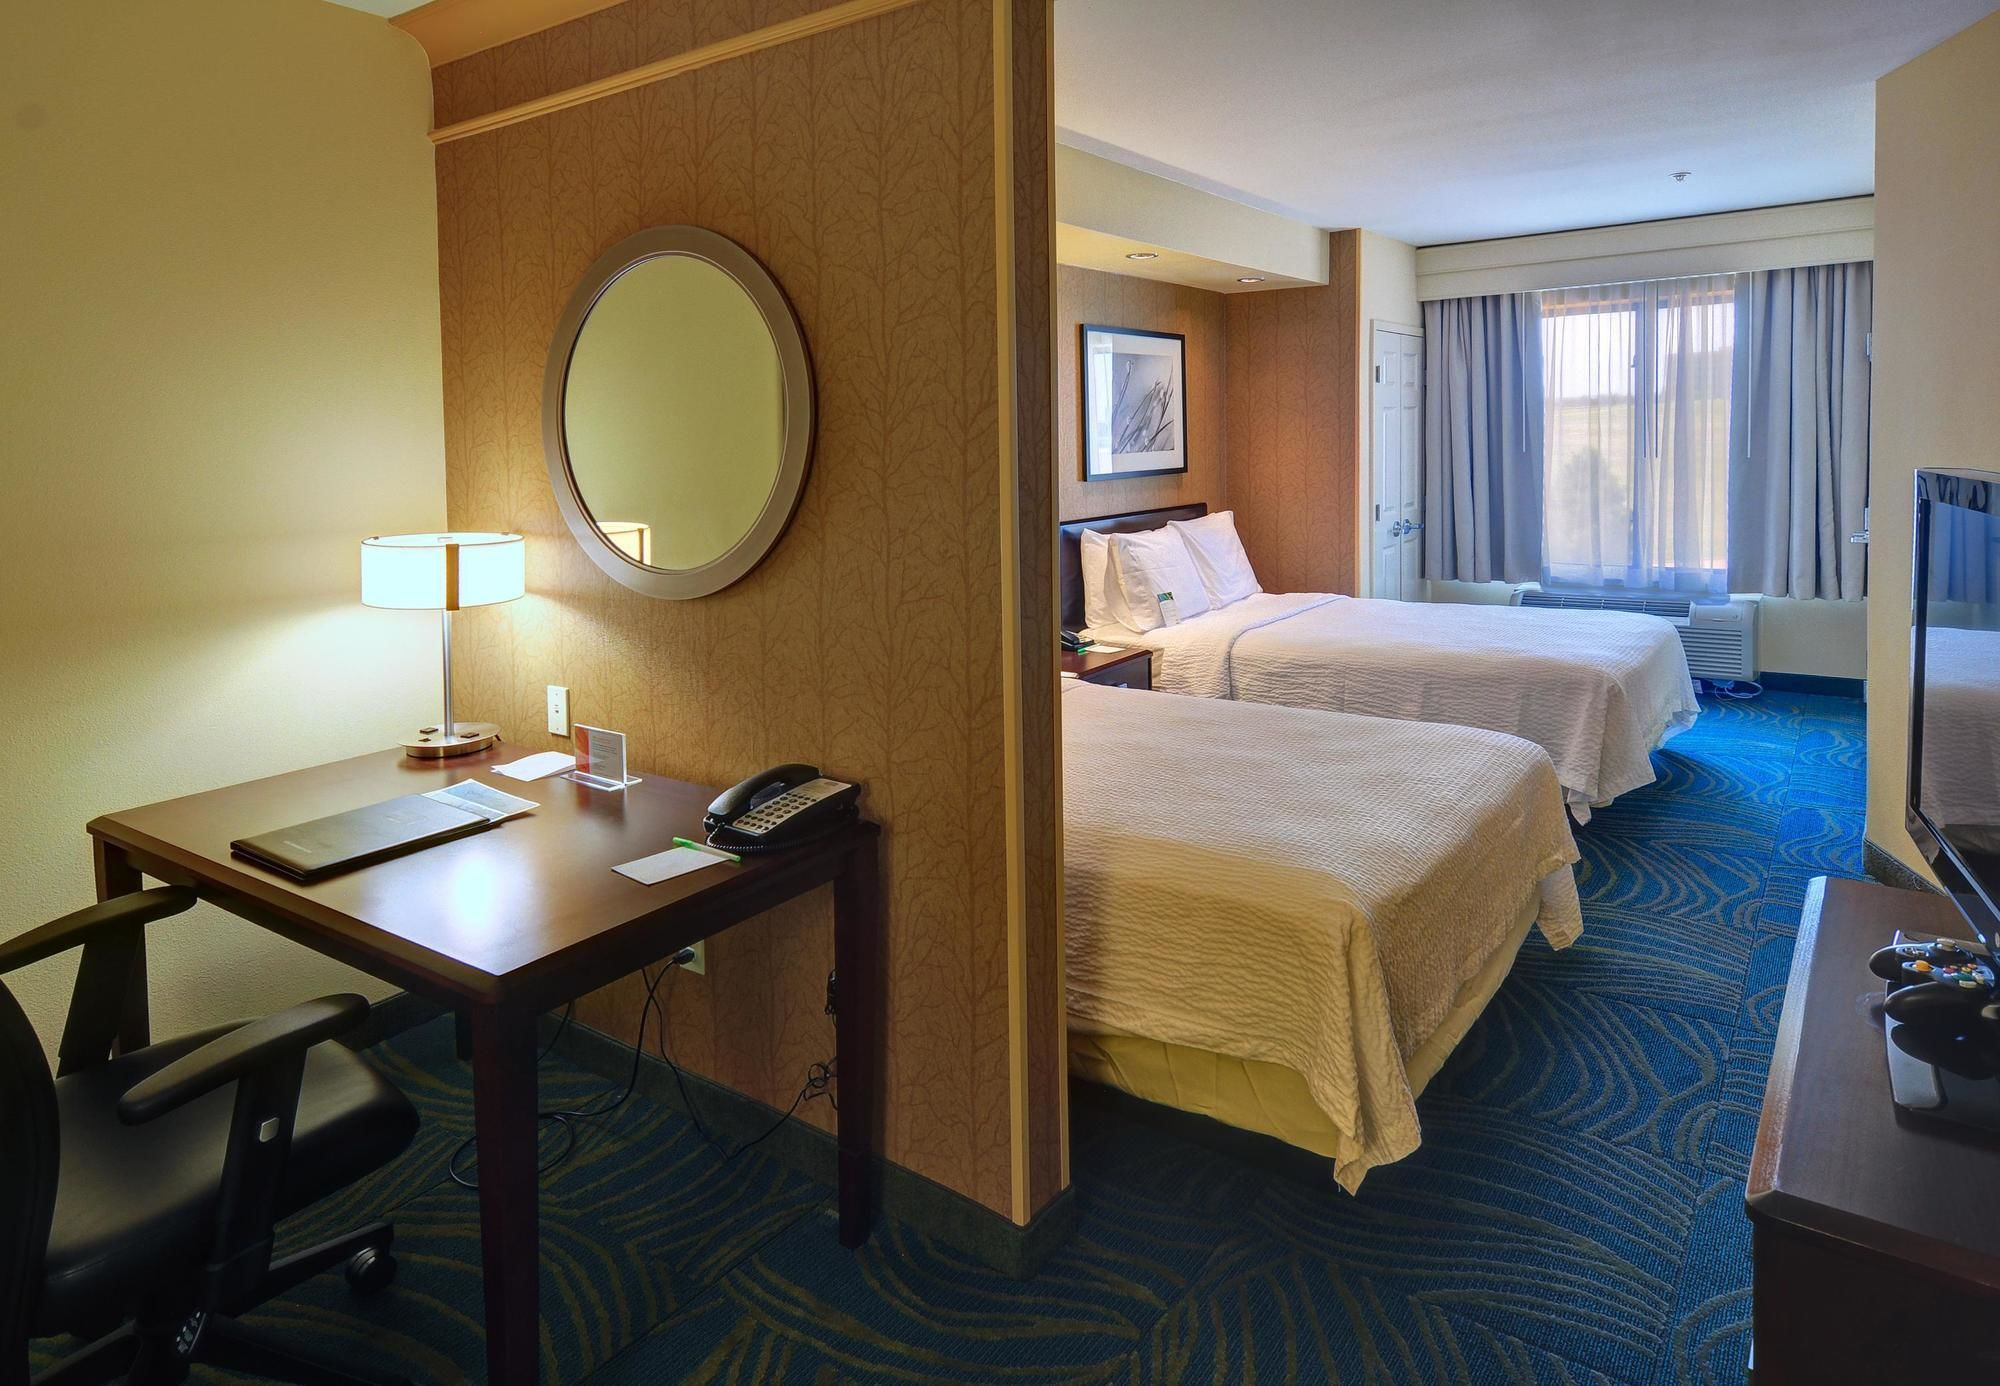 Irving Hotel Coupons for Irving, Texas - FreeHotelCoupons.com